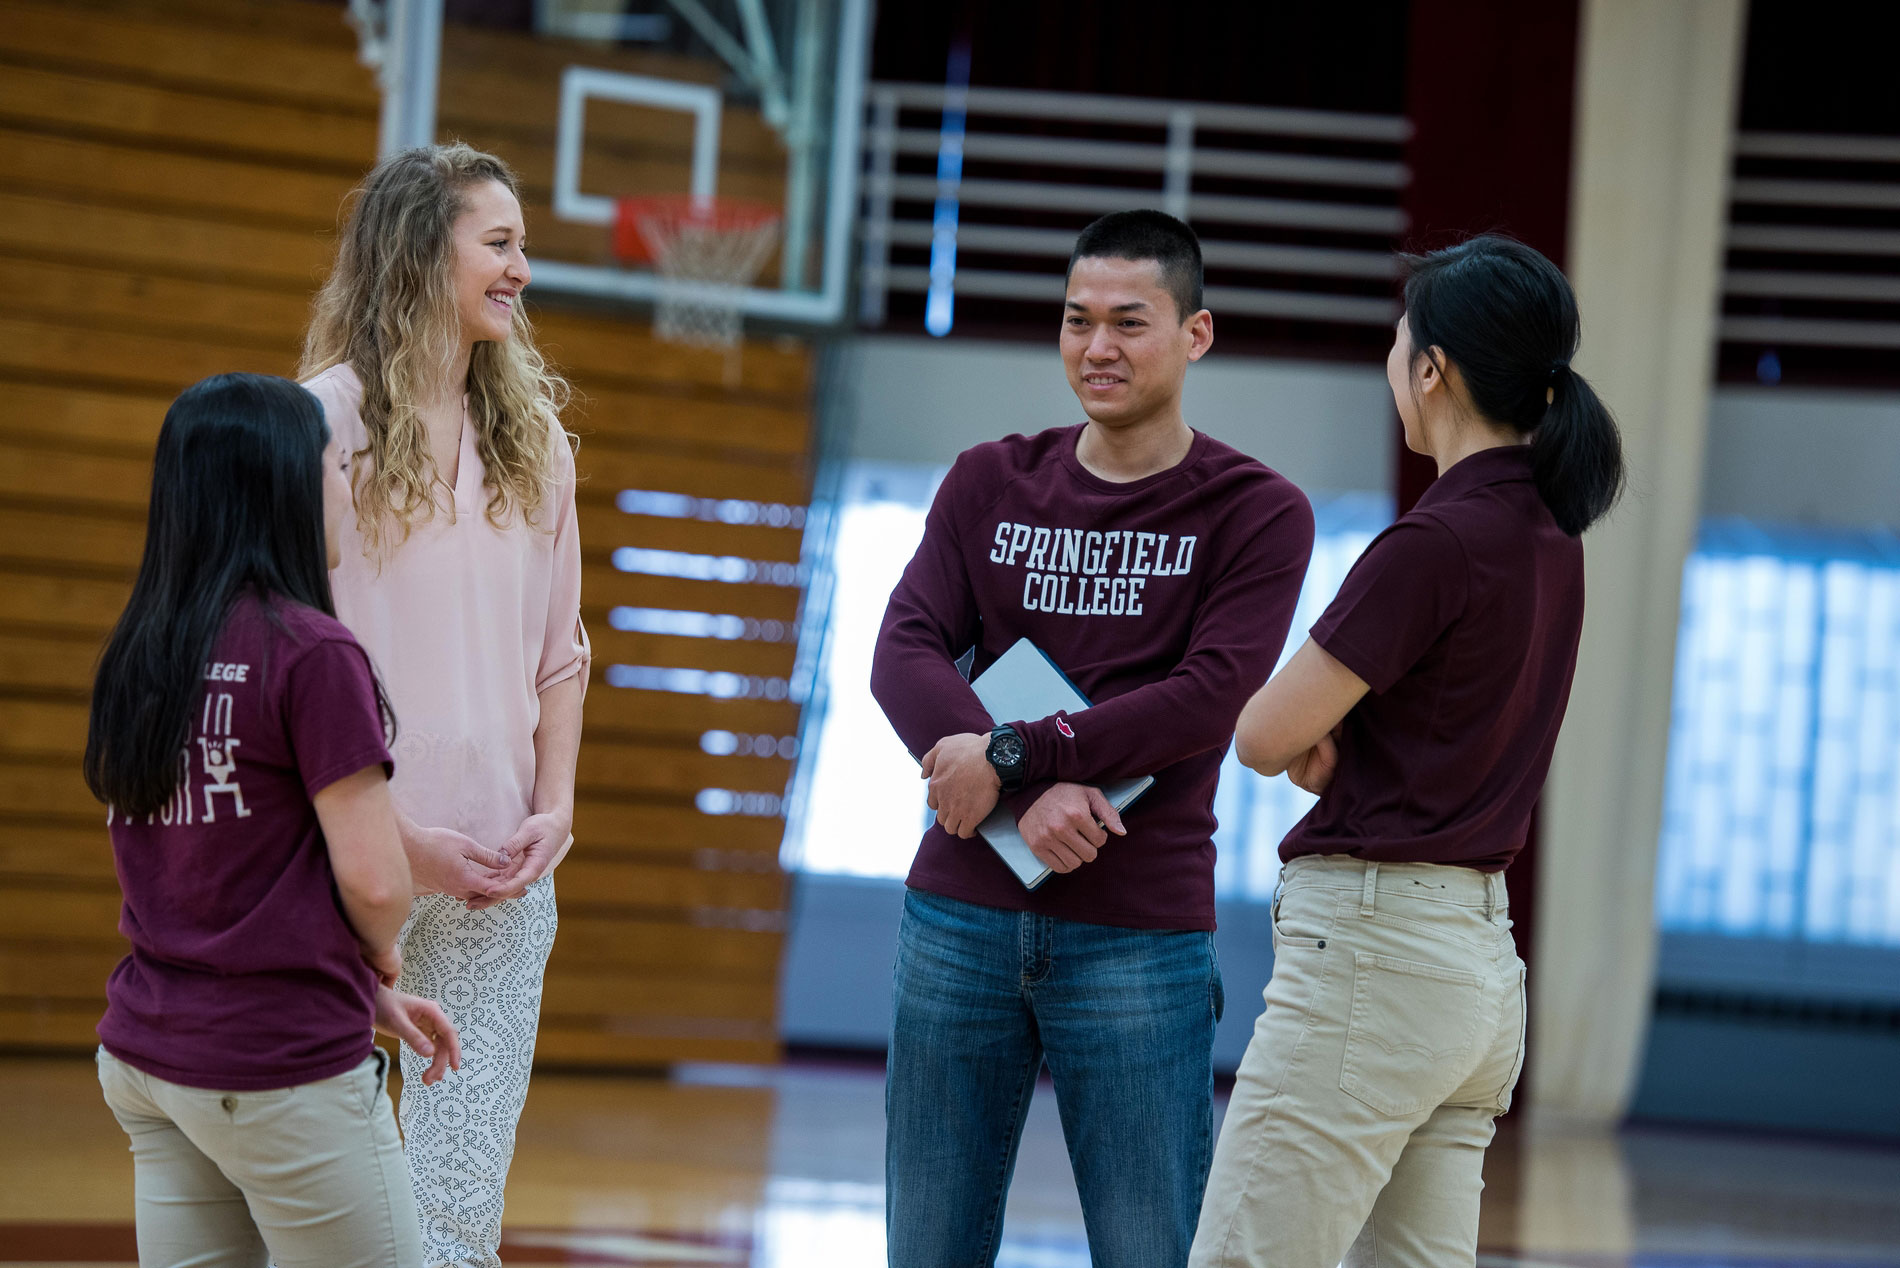 Students in the School of Physical Education, Performance and Sport Leadership stand in the basketball court at Springfield College while having a conversation.